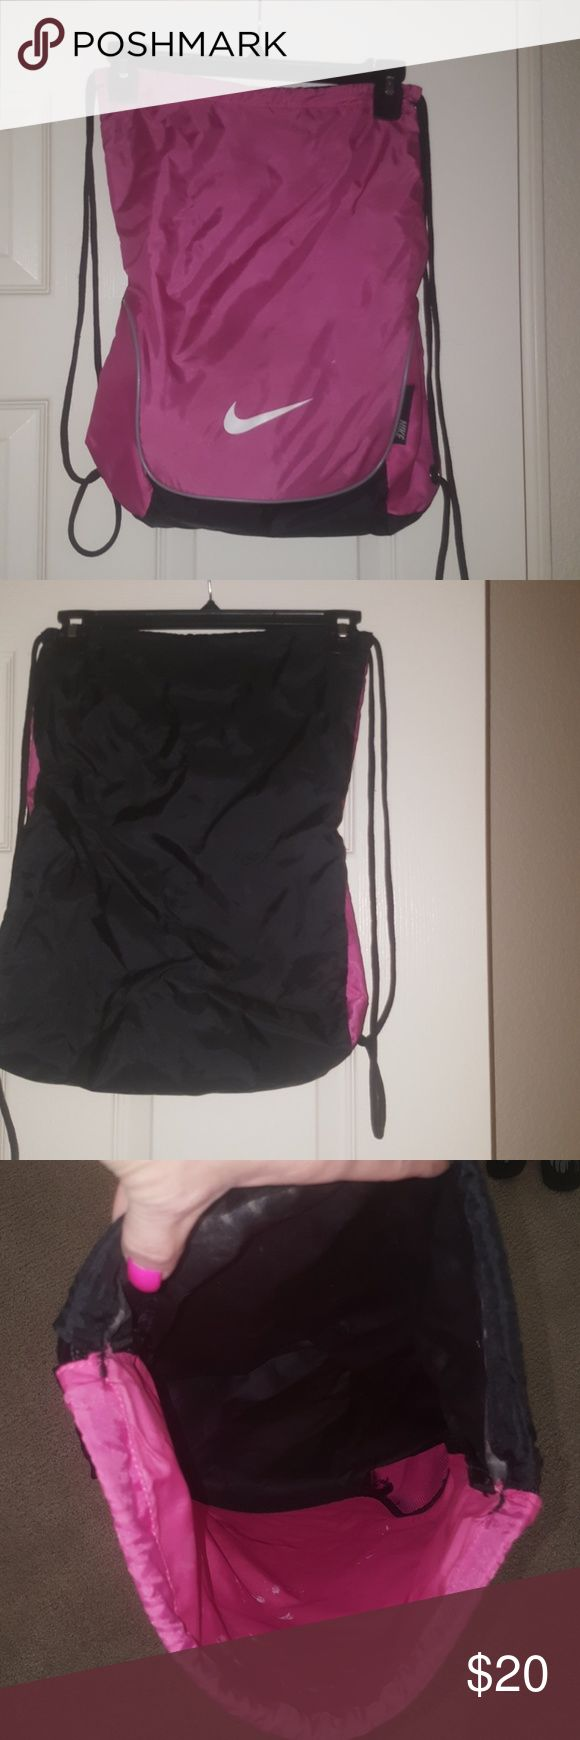 Nike bag Hardly used excellent condition. Make offer Nike Bags Shoulder Bags